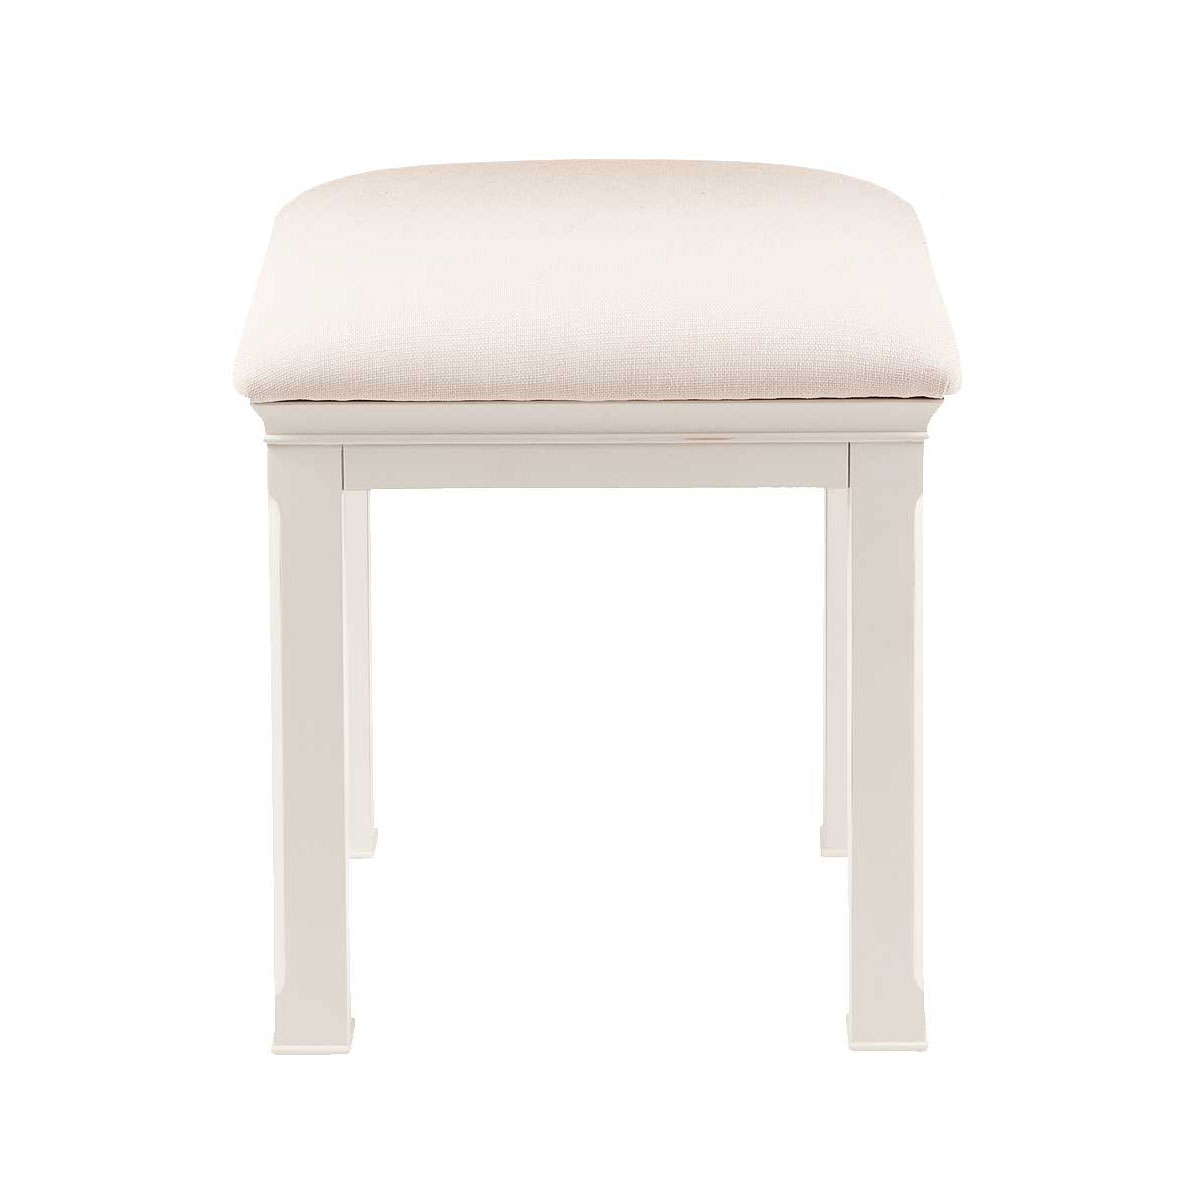 bedroom stools maine bedroom stool GUHVOTE